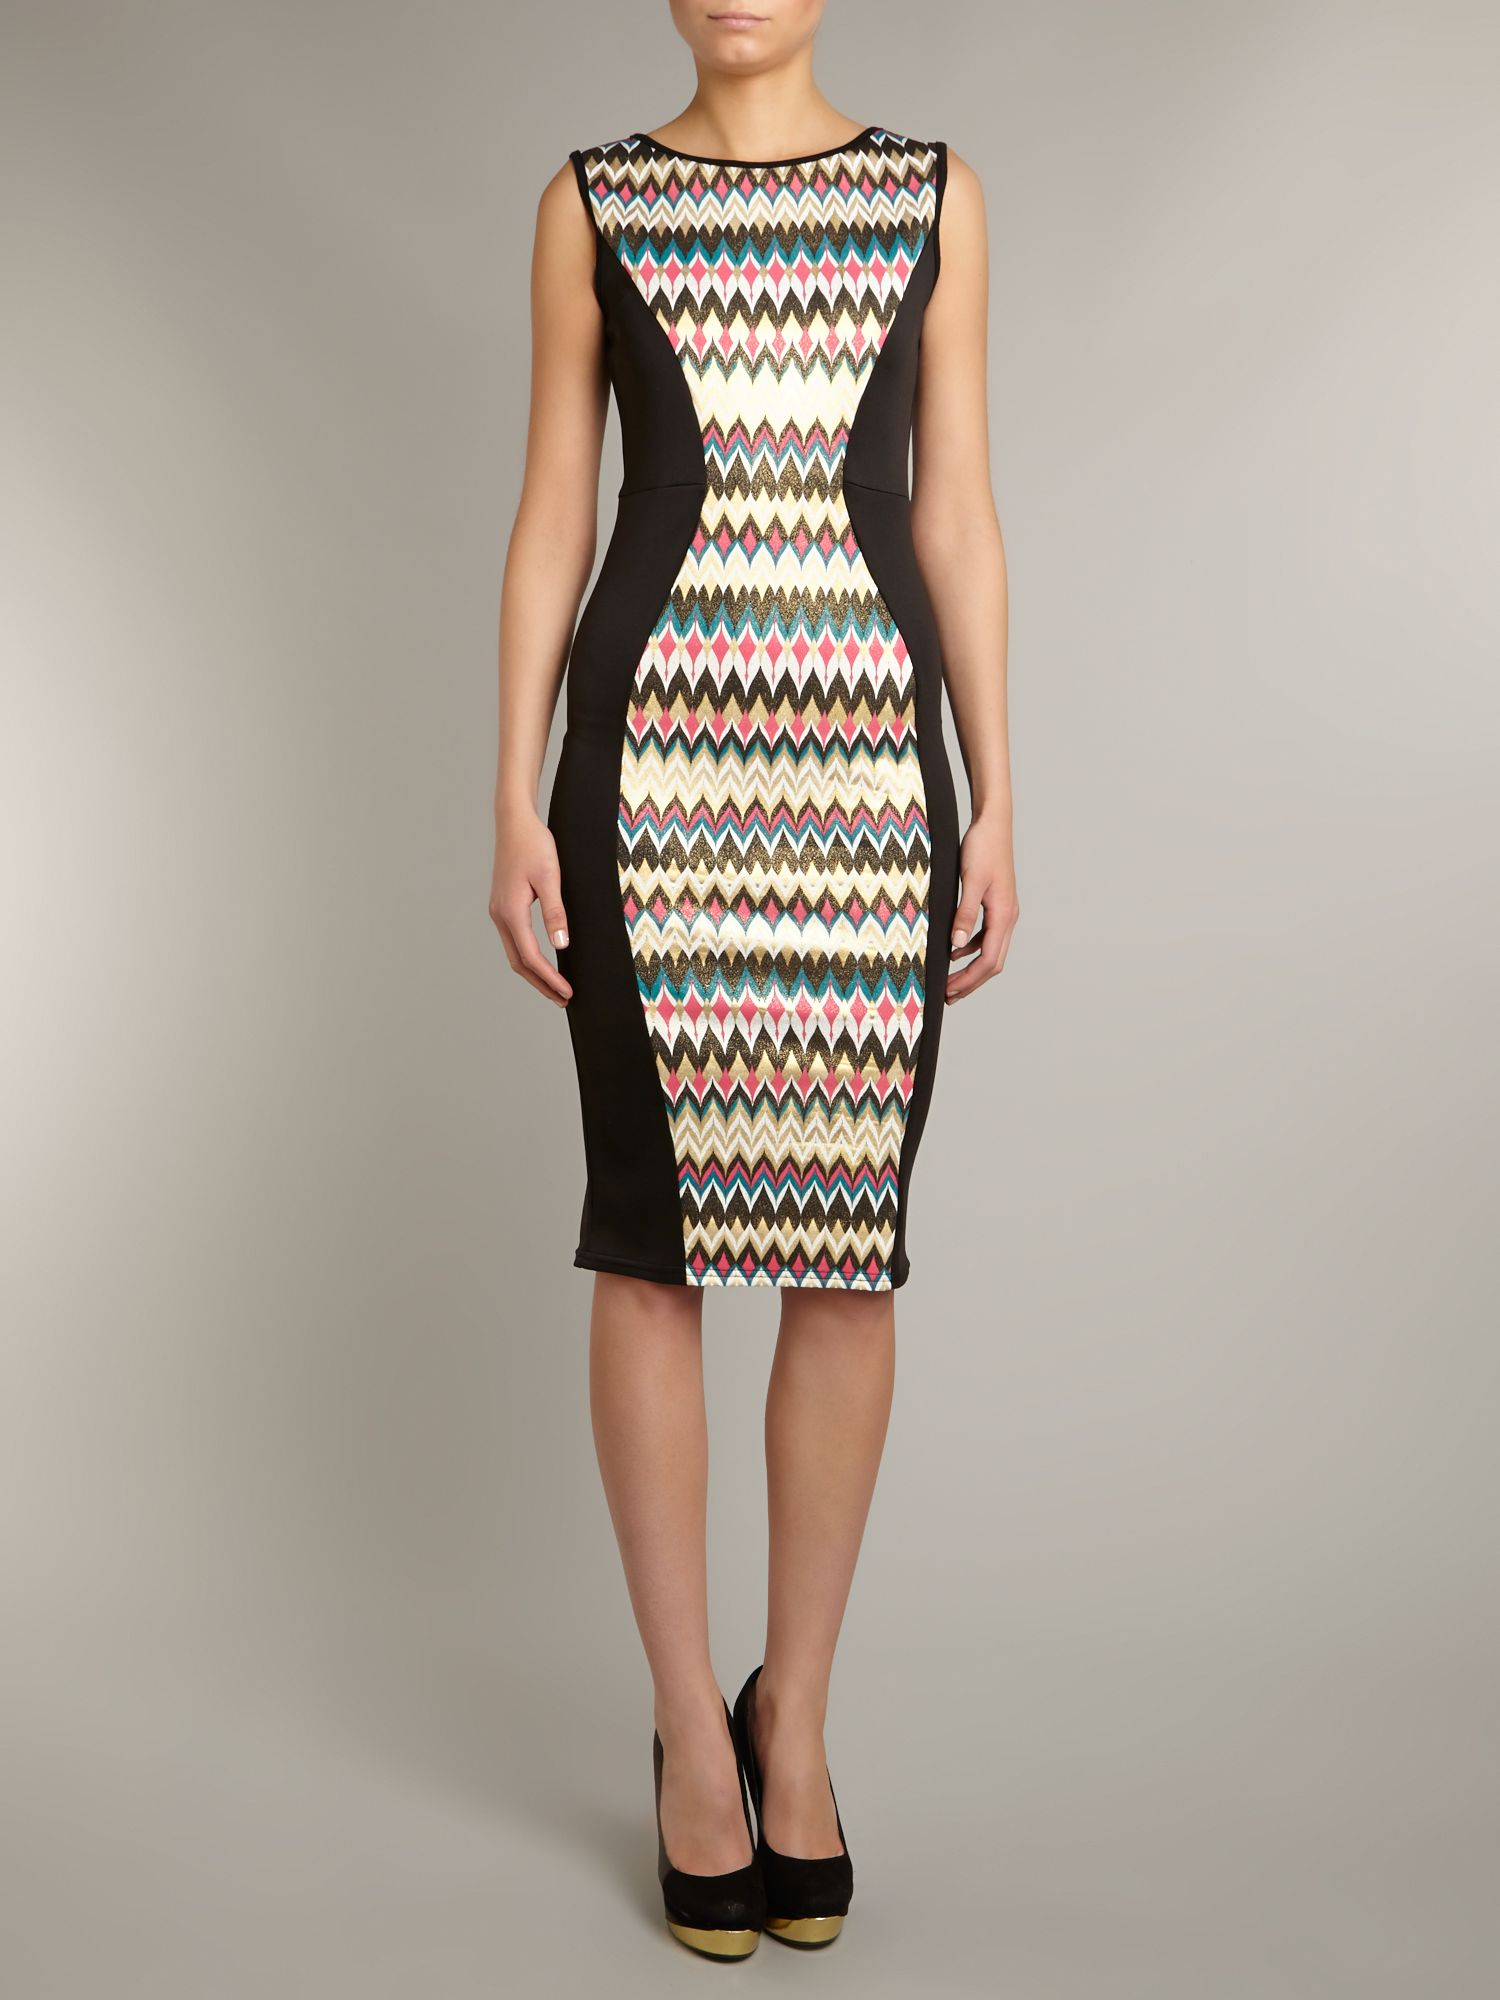 Wave pattern insert dress